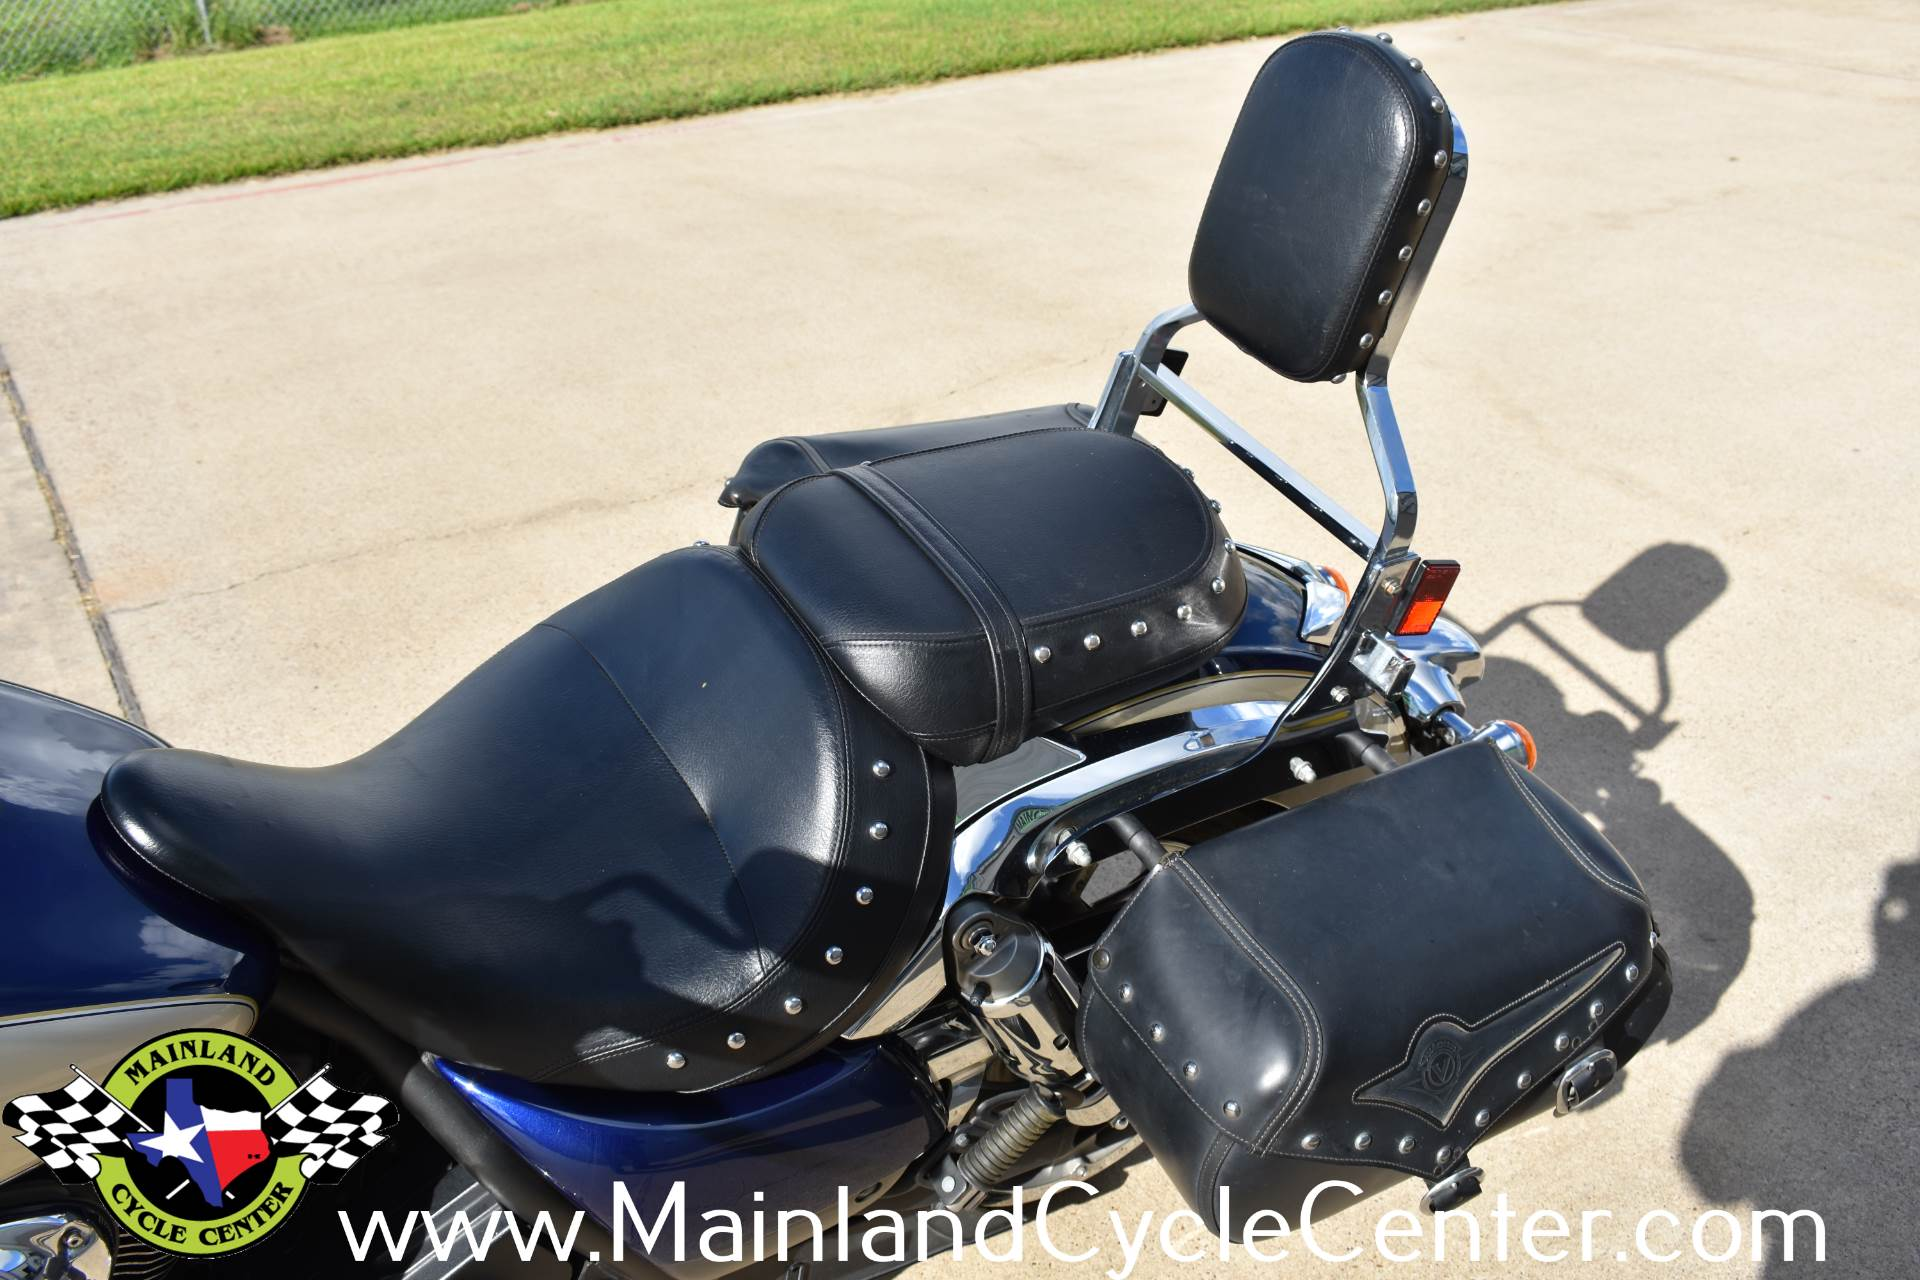 2009 Kawasaki Vulcan 1700 Classic LT in La Marque, Texas - Photo 17